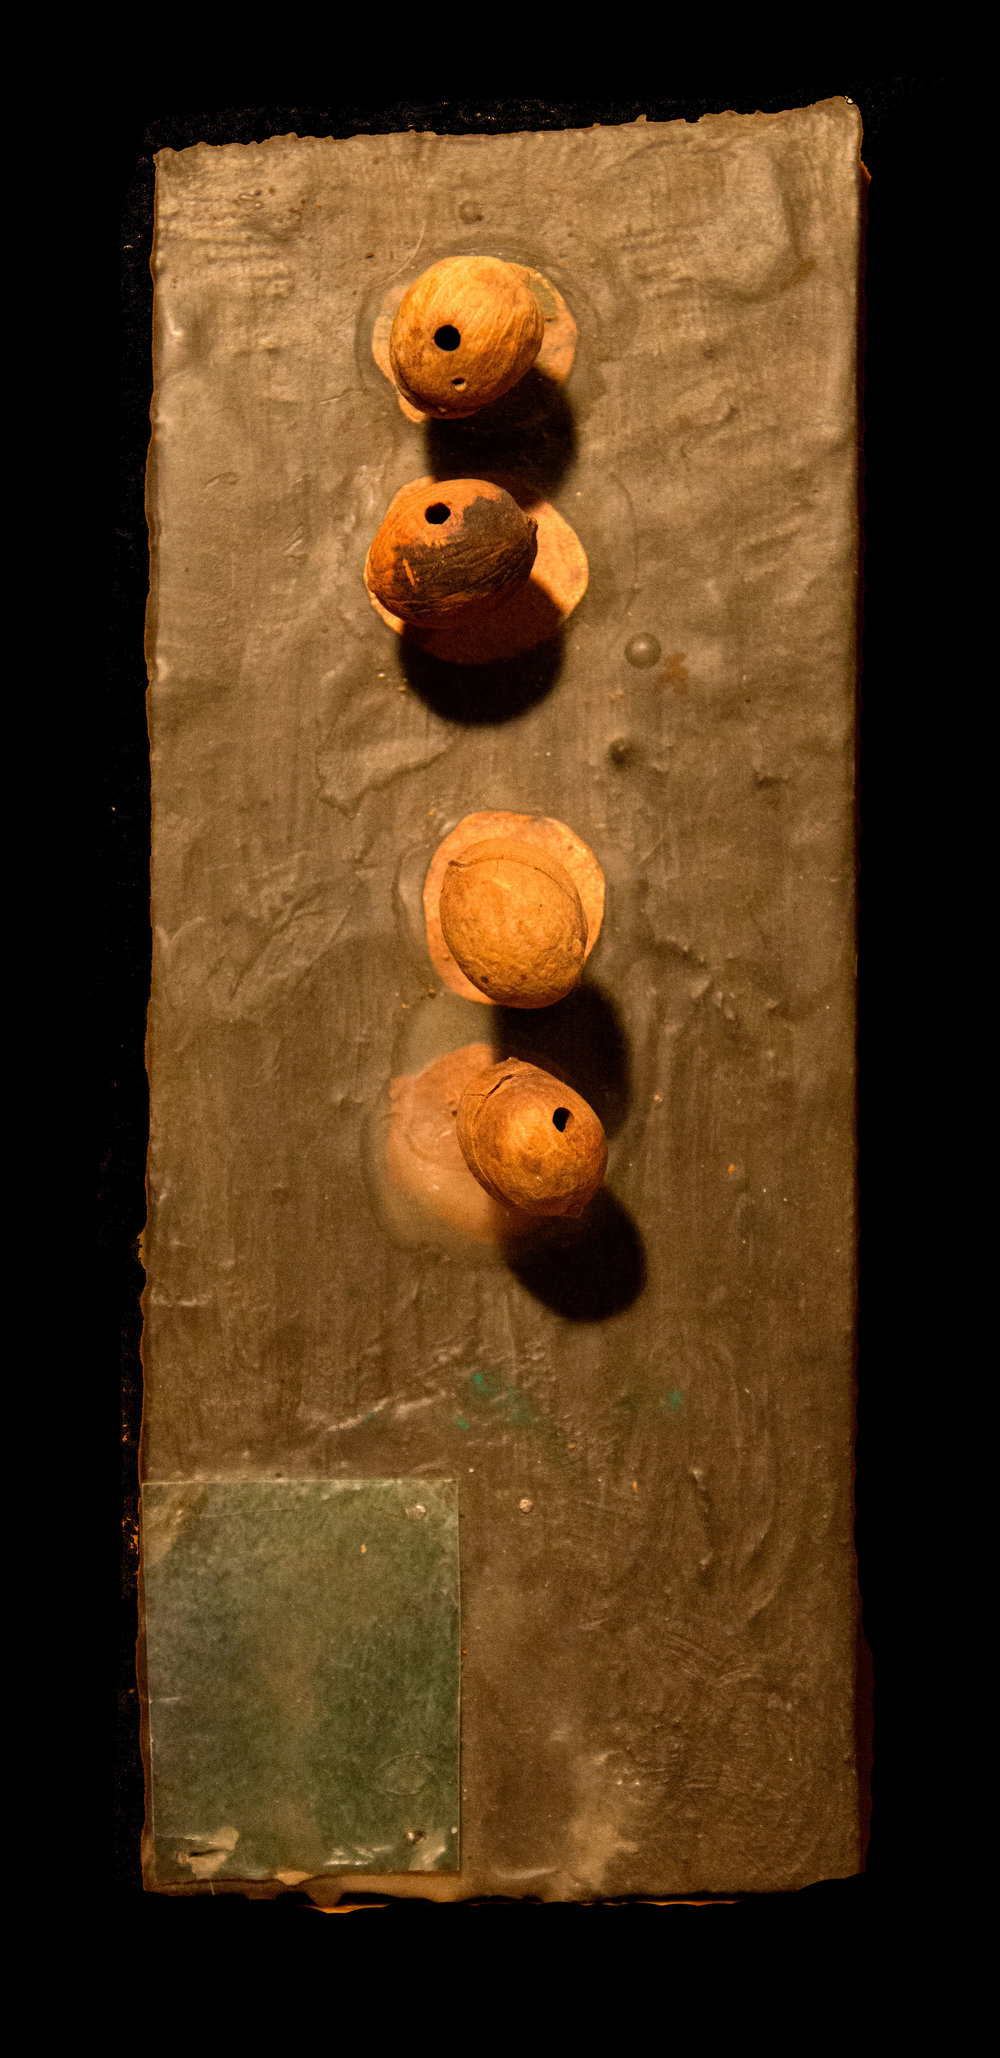 "Oak Ave Talisman Acrylic, beeswax, copper, photograph, sticks and oak seeds on wood. 4.5"" x 8""  2016"